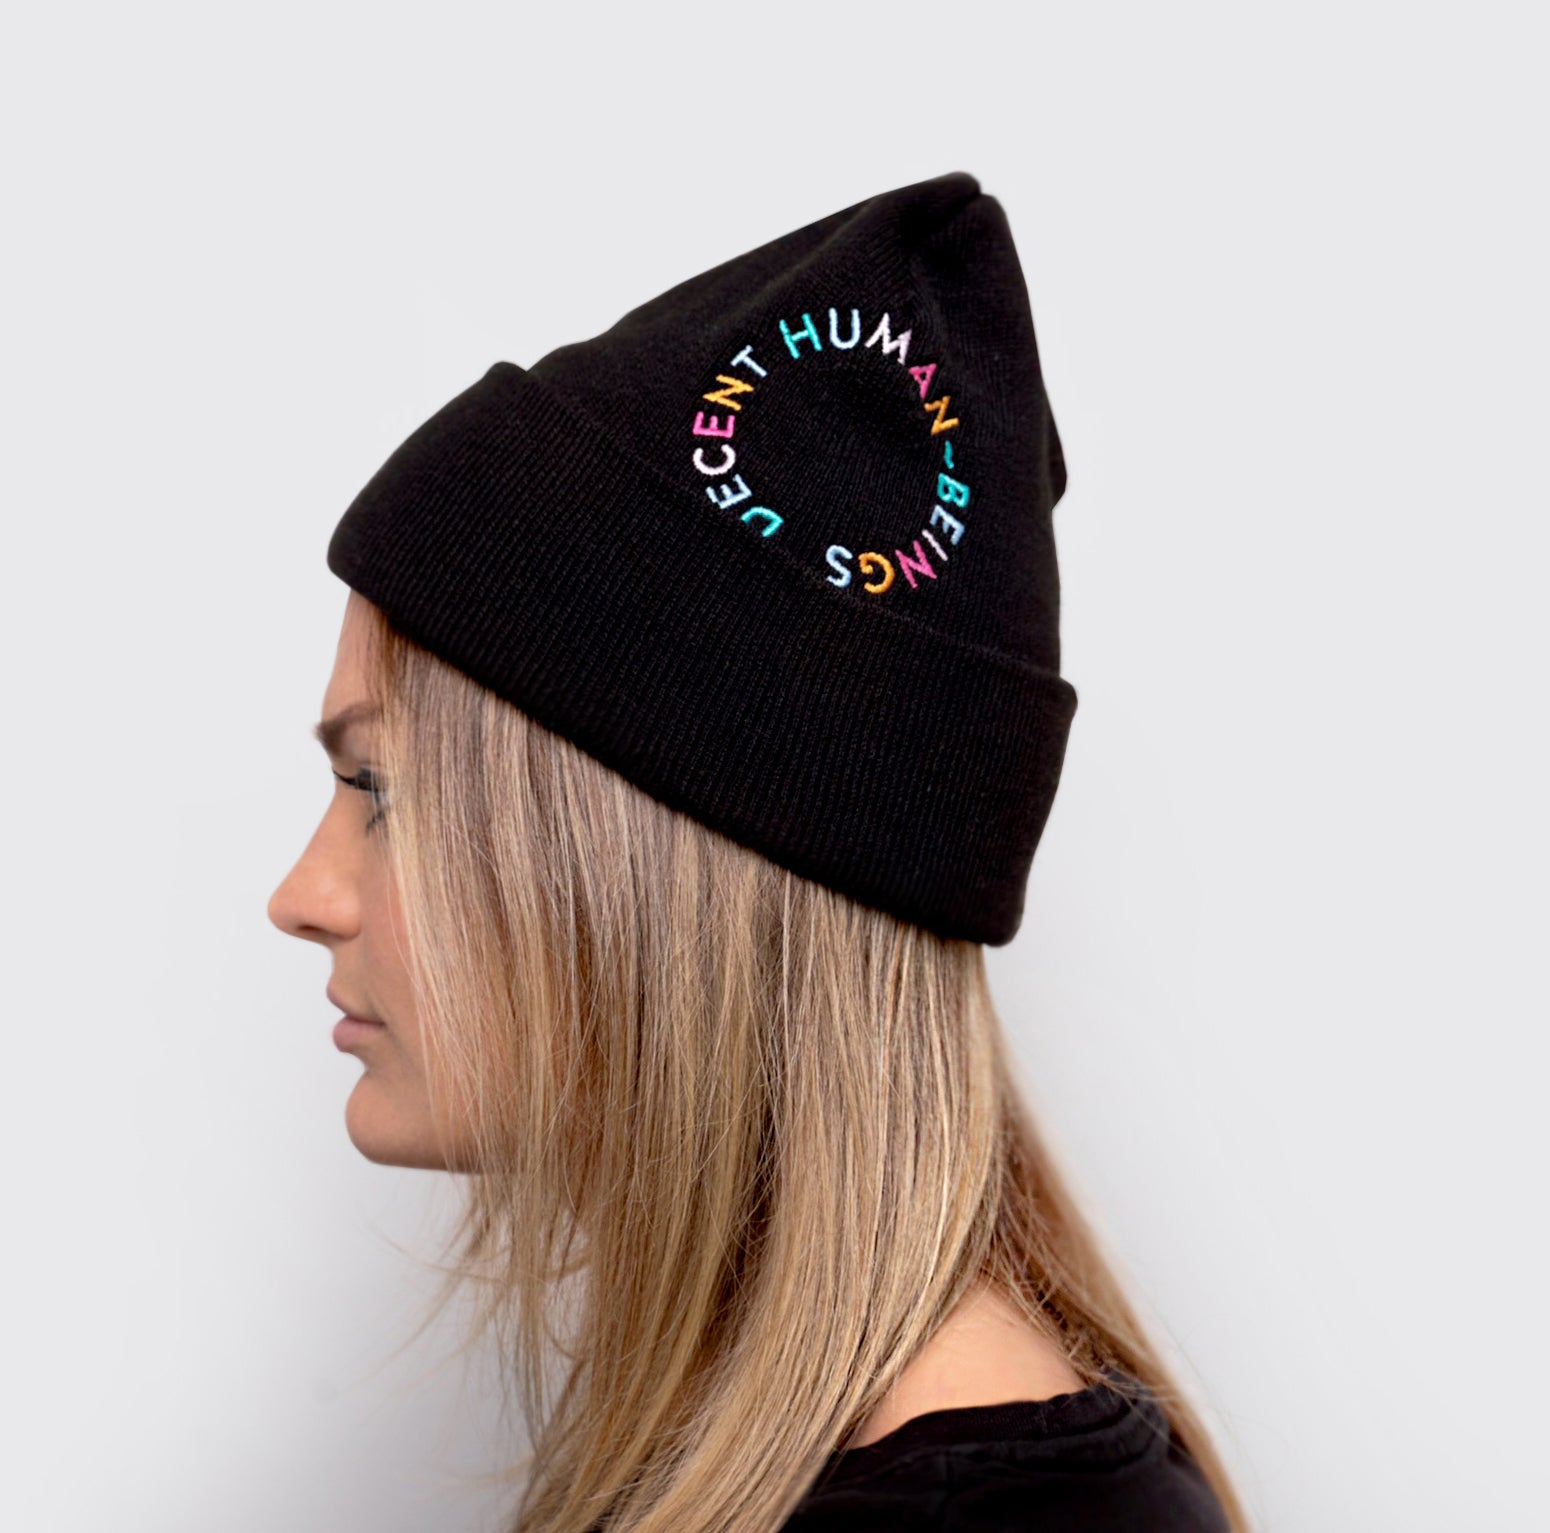 CIRCLE LOGO CUFFED BEANIE - BLACK